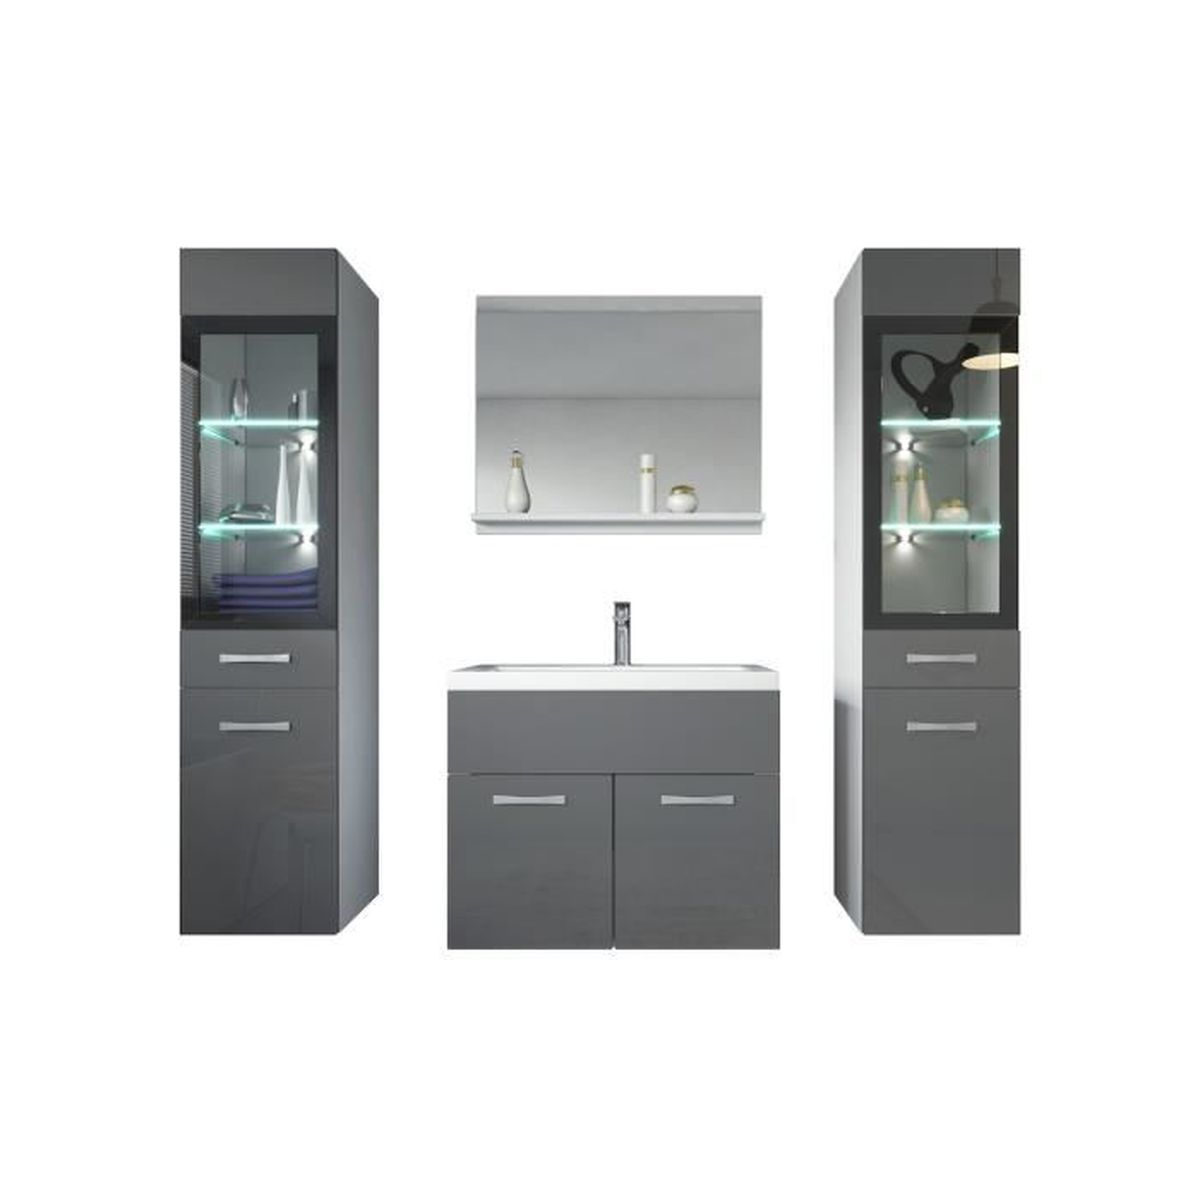 salle de bain compl te gris achat vente salle de bain. Black Bedroom Furniture Sets. Home Design Ideas